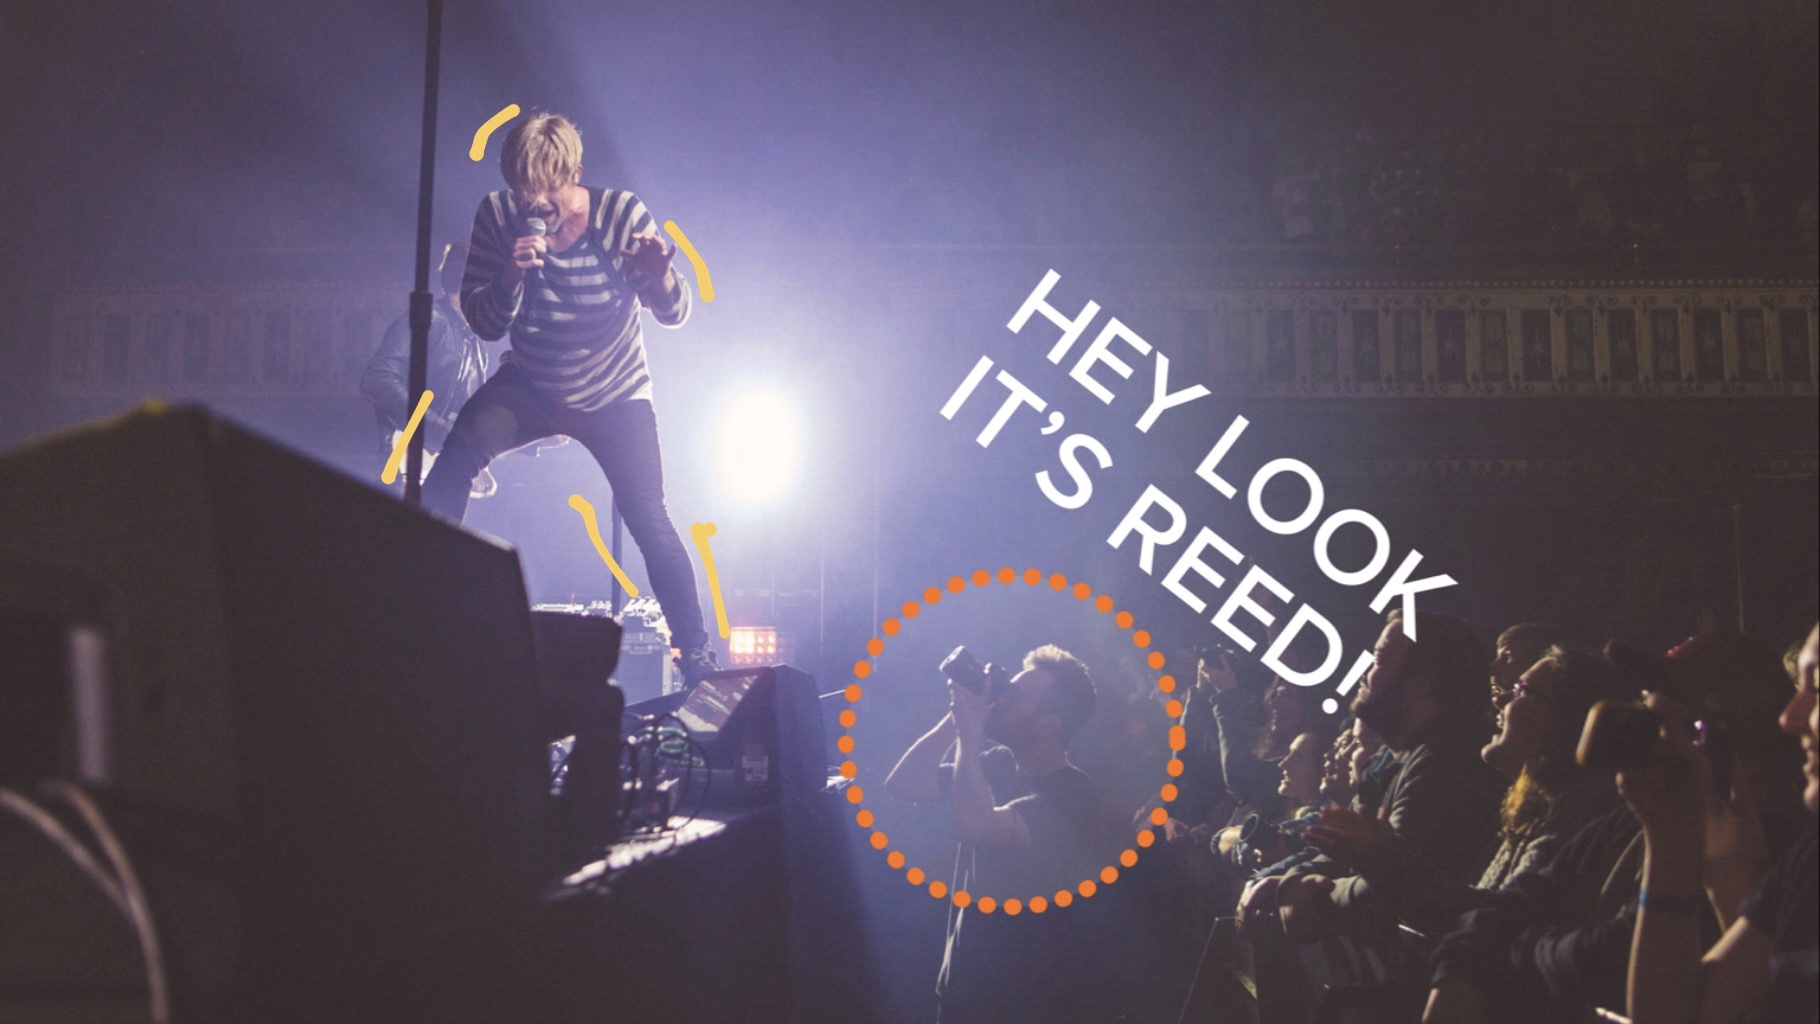 Here is one of our students shooting for platinum record selling and grammy winning band Switchfoot at the Tabernacle in Atlanta, GA.